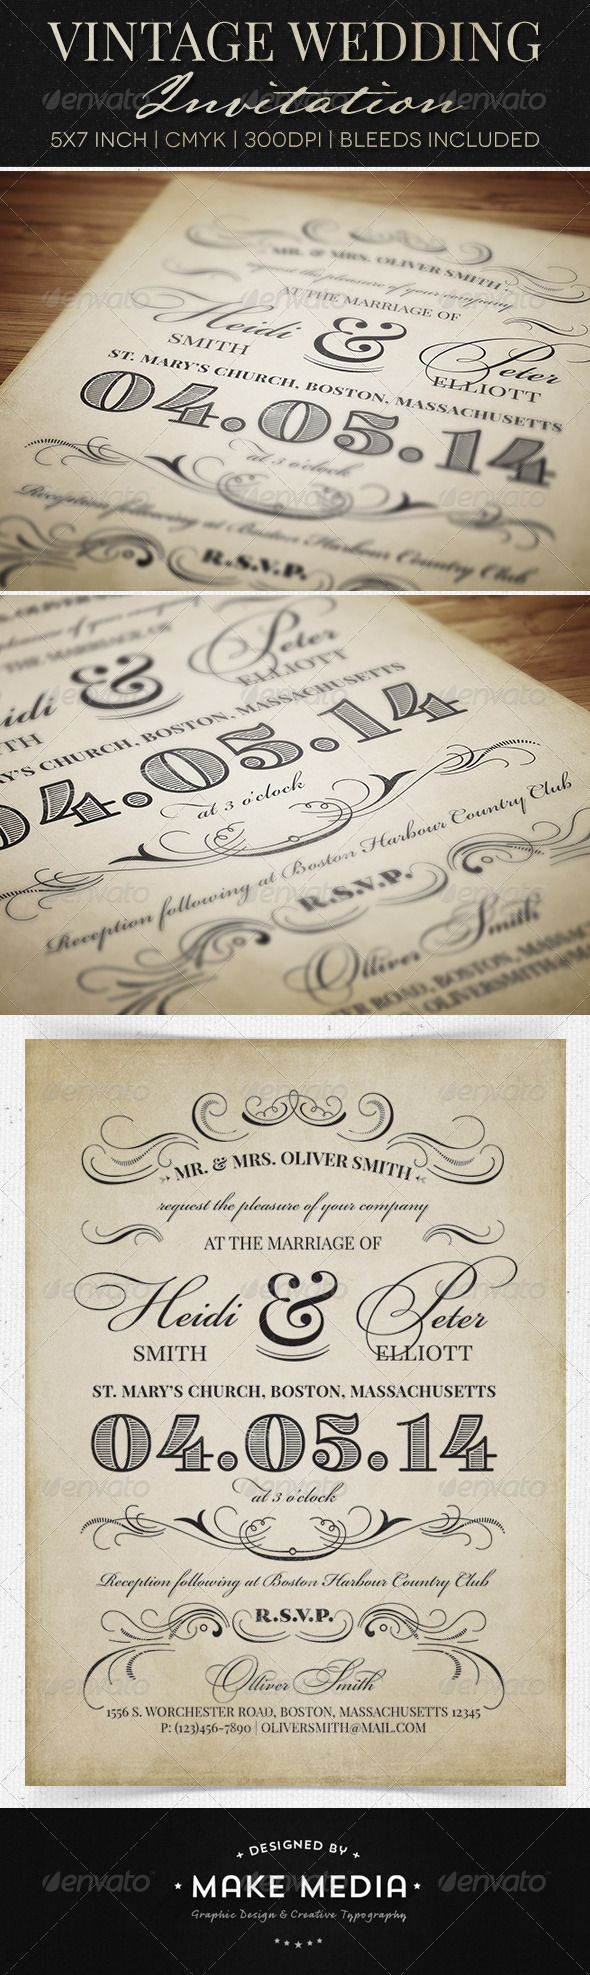 Vintage Wedding Invitation - Weddings Cards & Invites